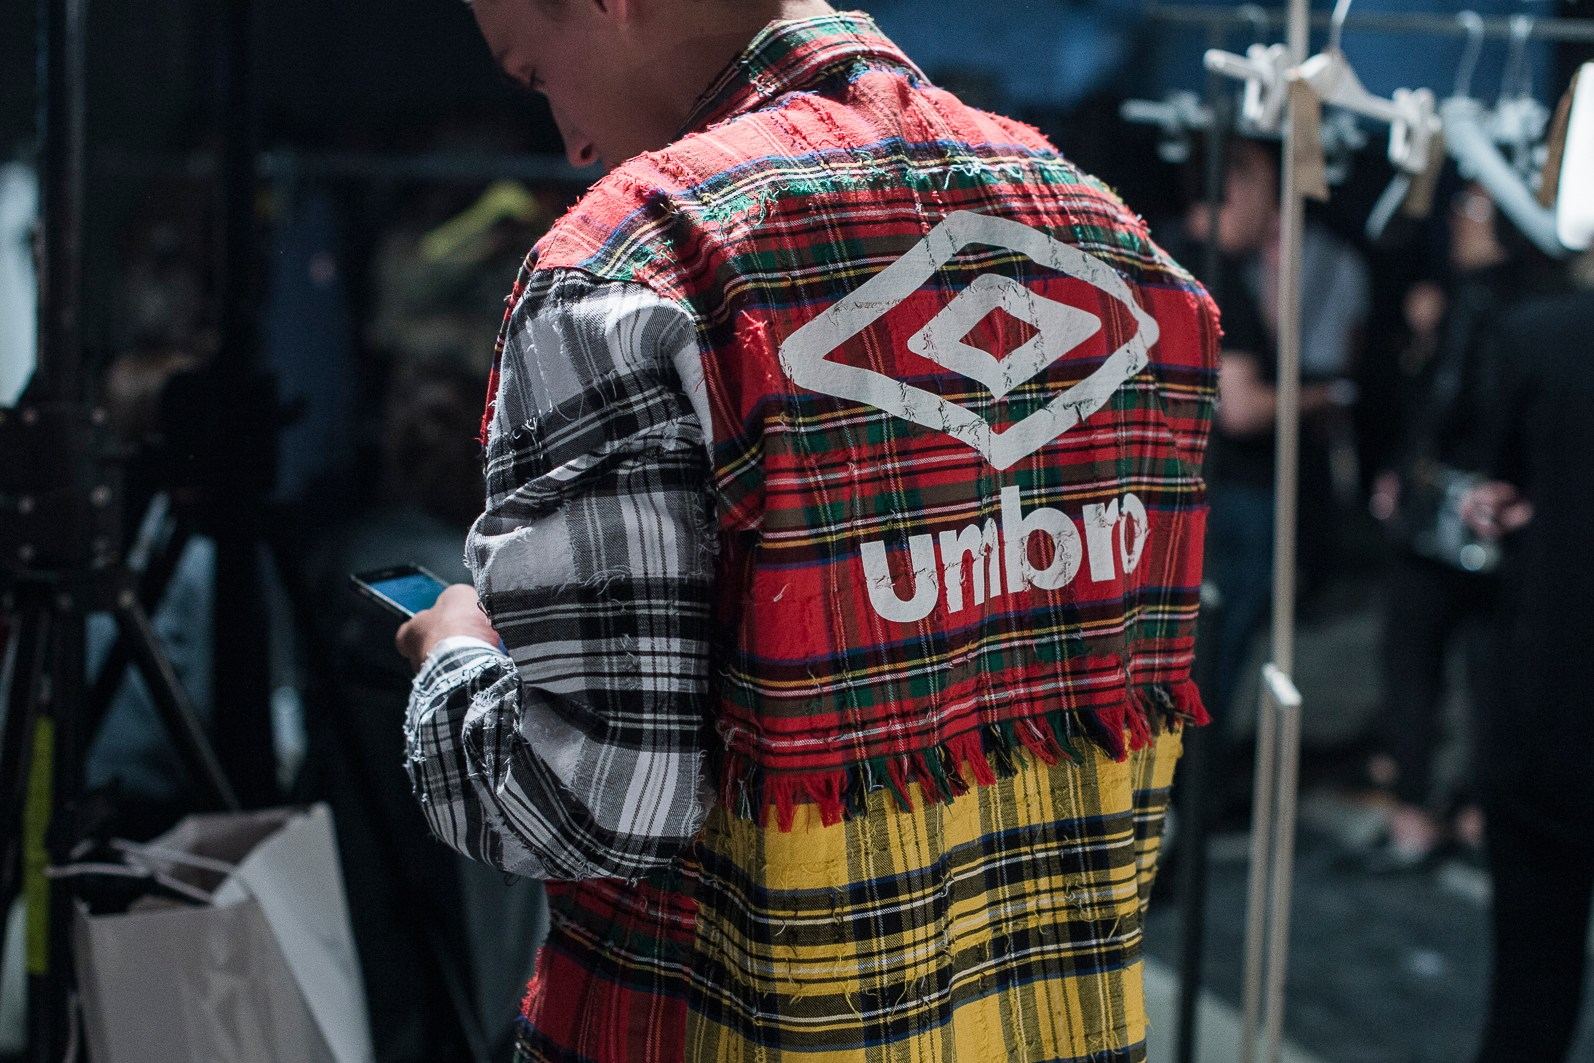 Virgil Abloh's OFF-WHITE x Umbro Collaboration Is Now Available